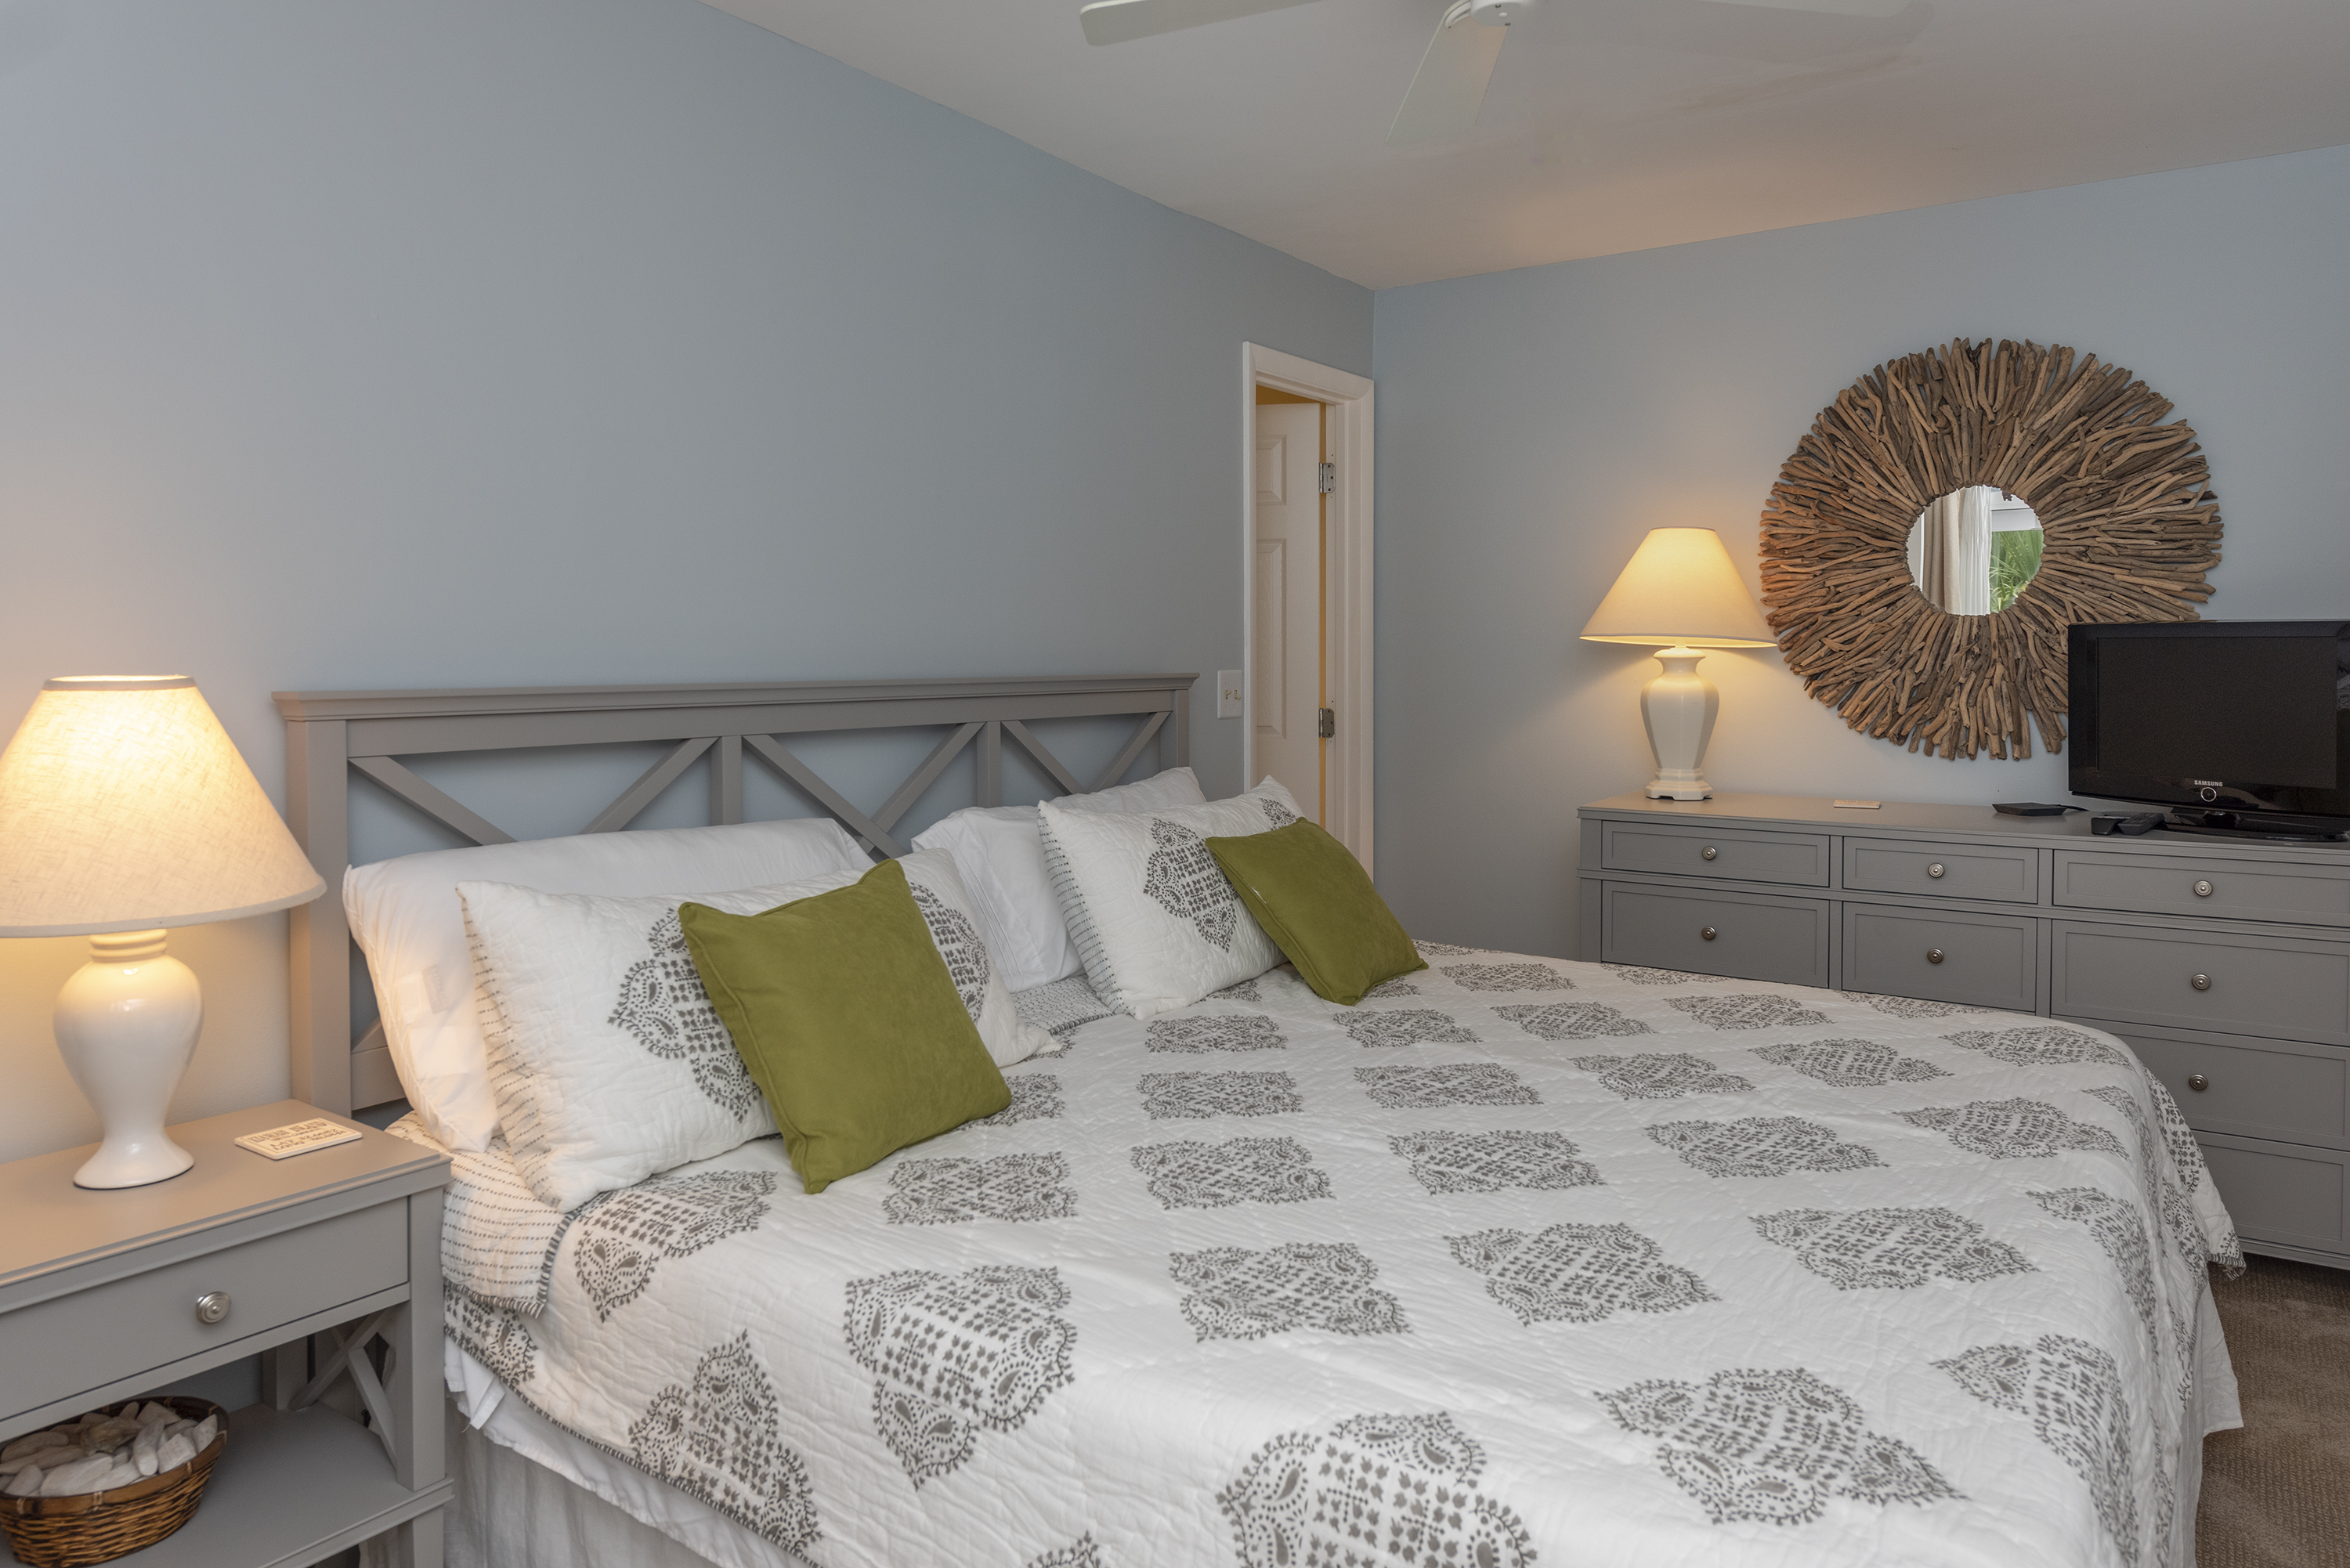 The master bedroom has a king bed, en suite full bathroom and sliding doors to a deck.